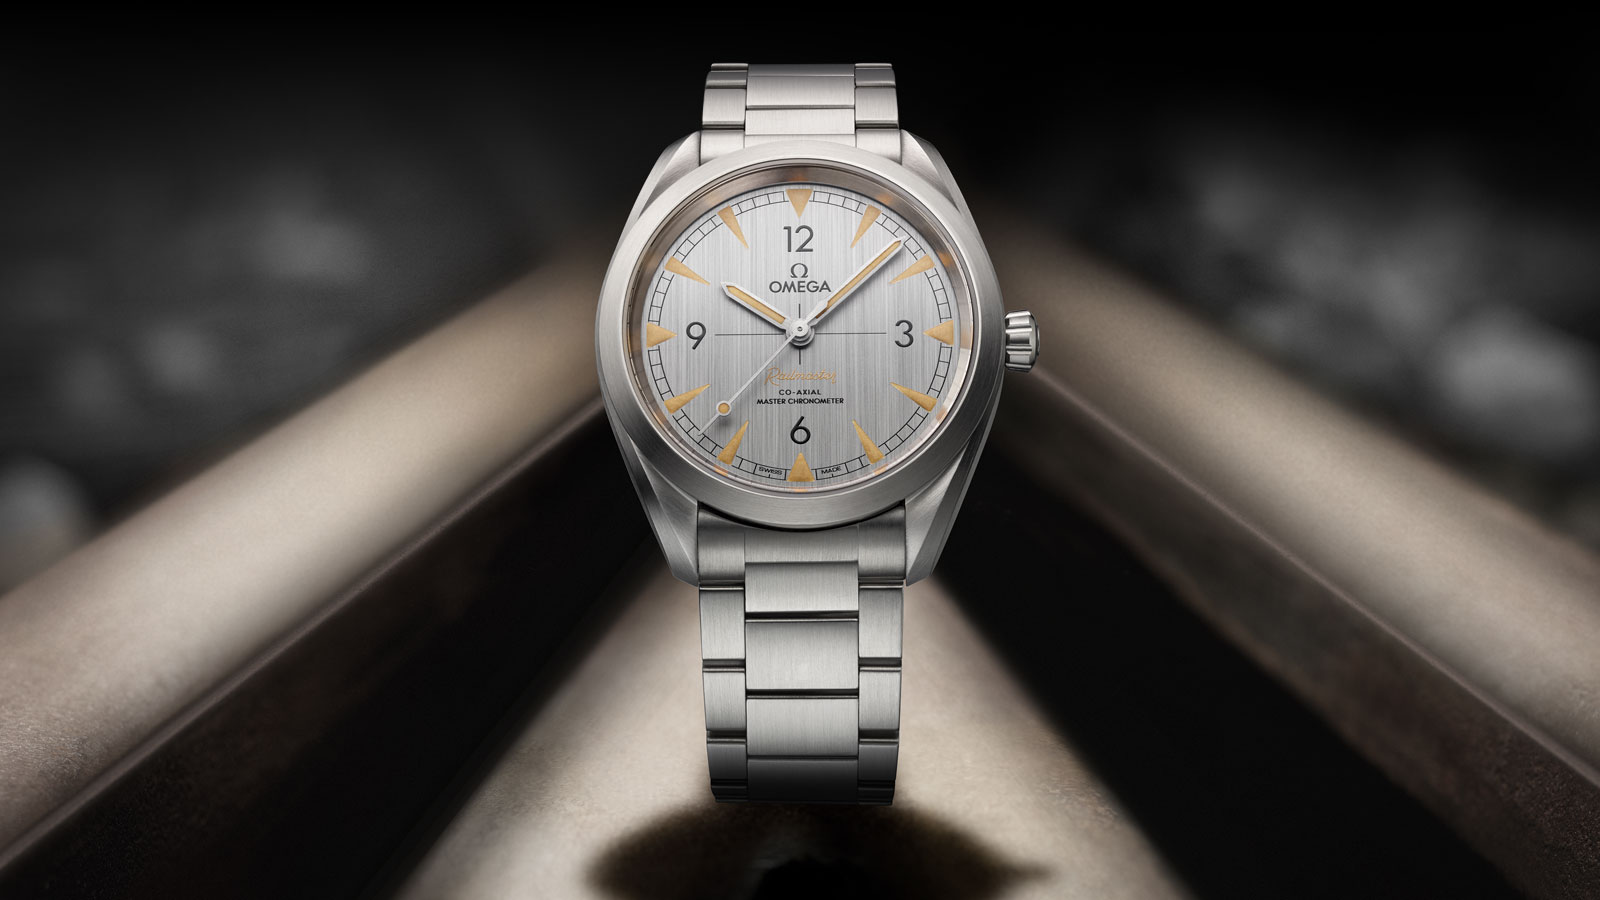 Seamaster レイルマスター Railmaster Omega Co‑Axial Master Chronometer 40 mm - 220.10.40.20.06.001 - ビュー 2